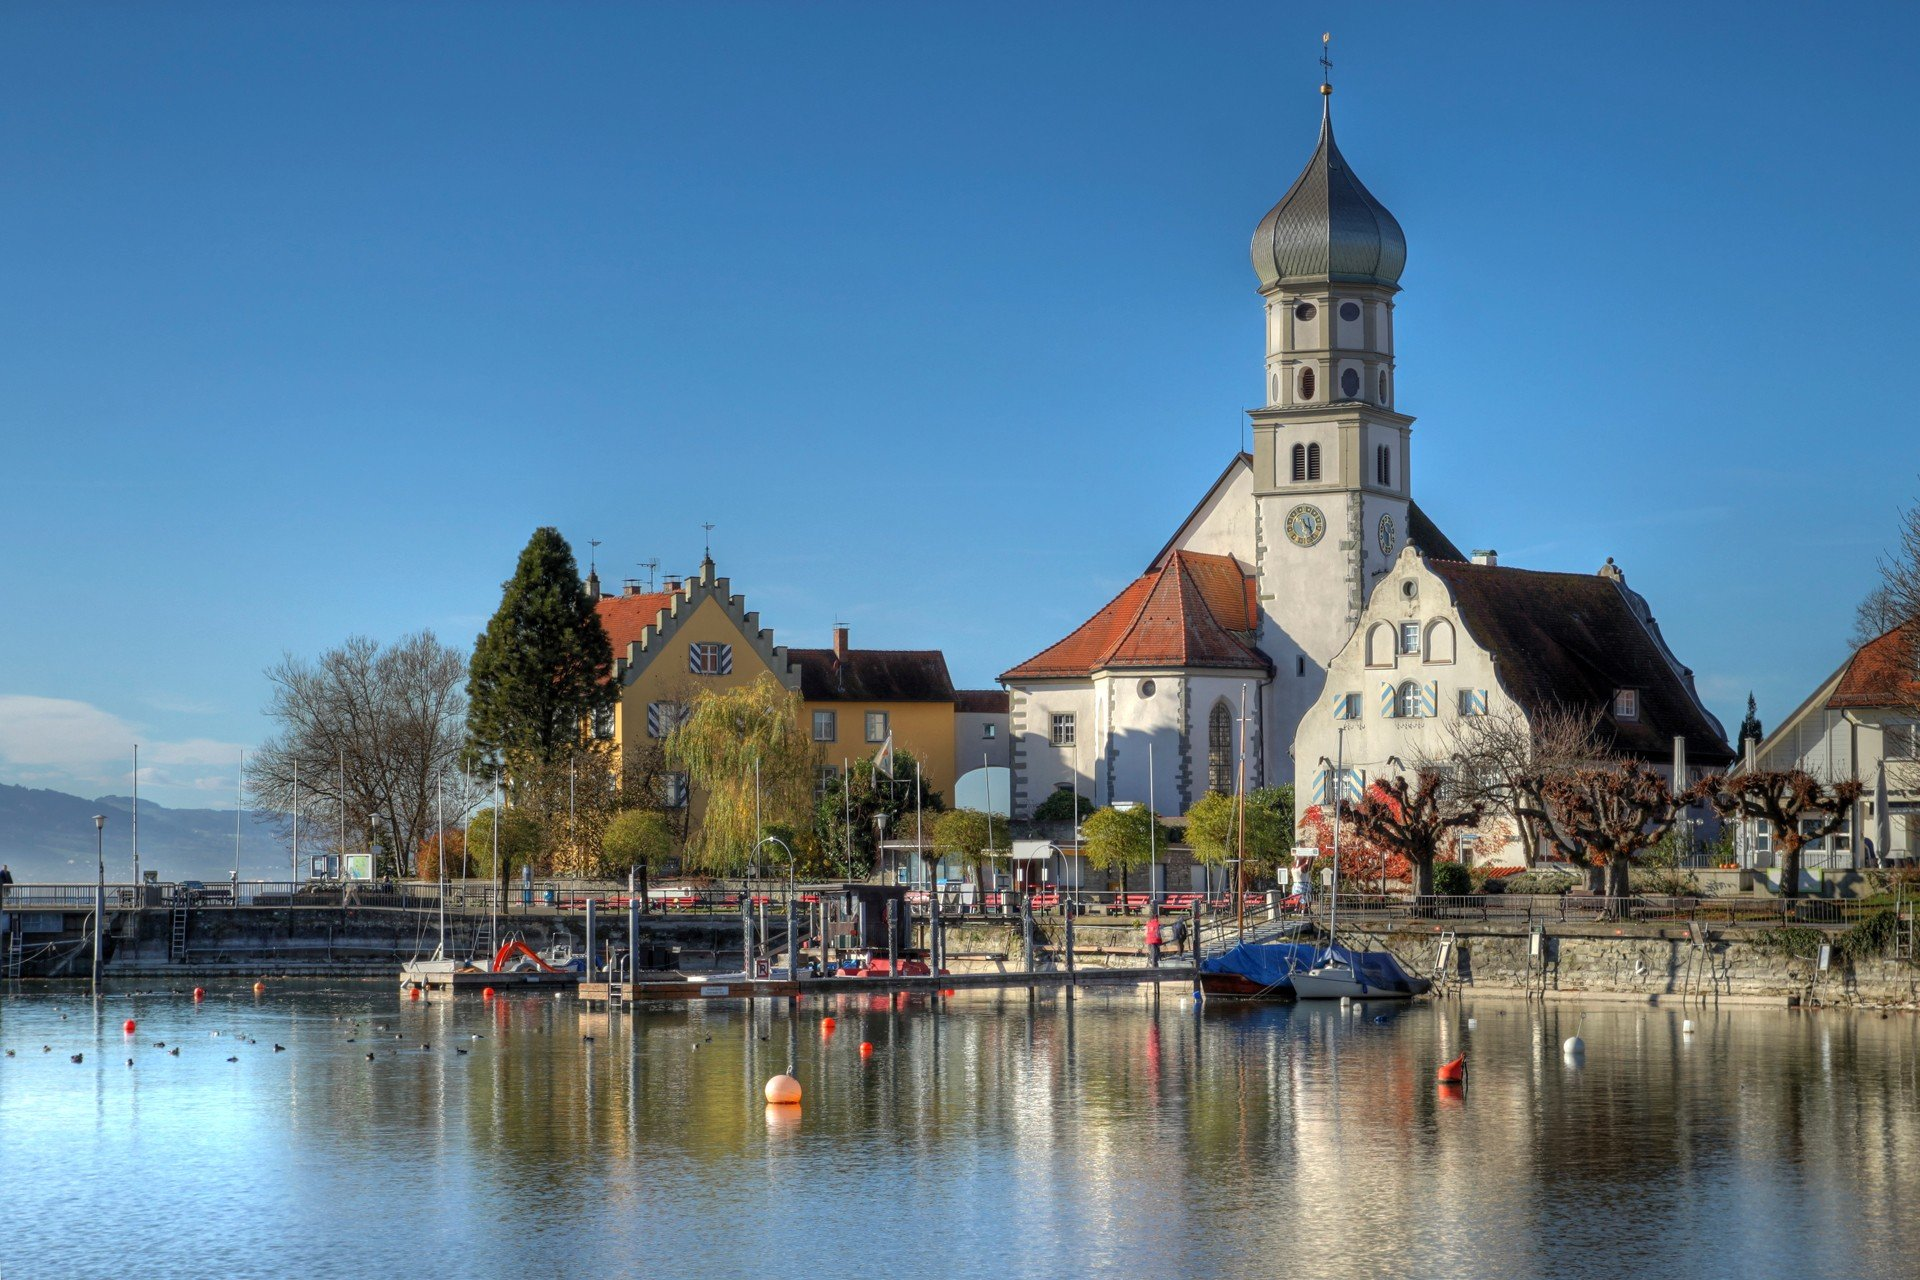 Kurzurlaub Am Bodensee Wellnessurlaub Wellness Hotels Fur